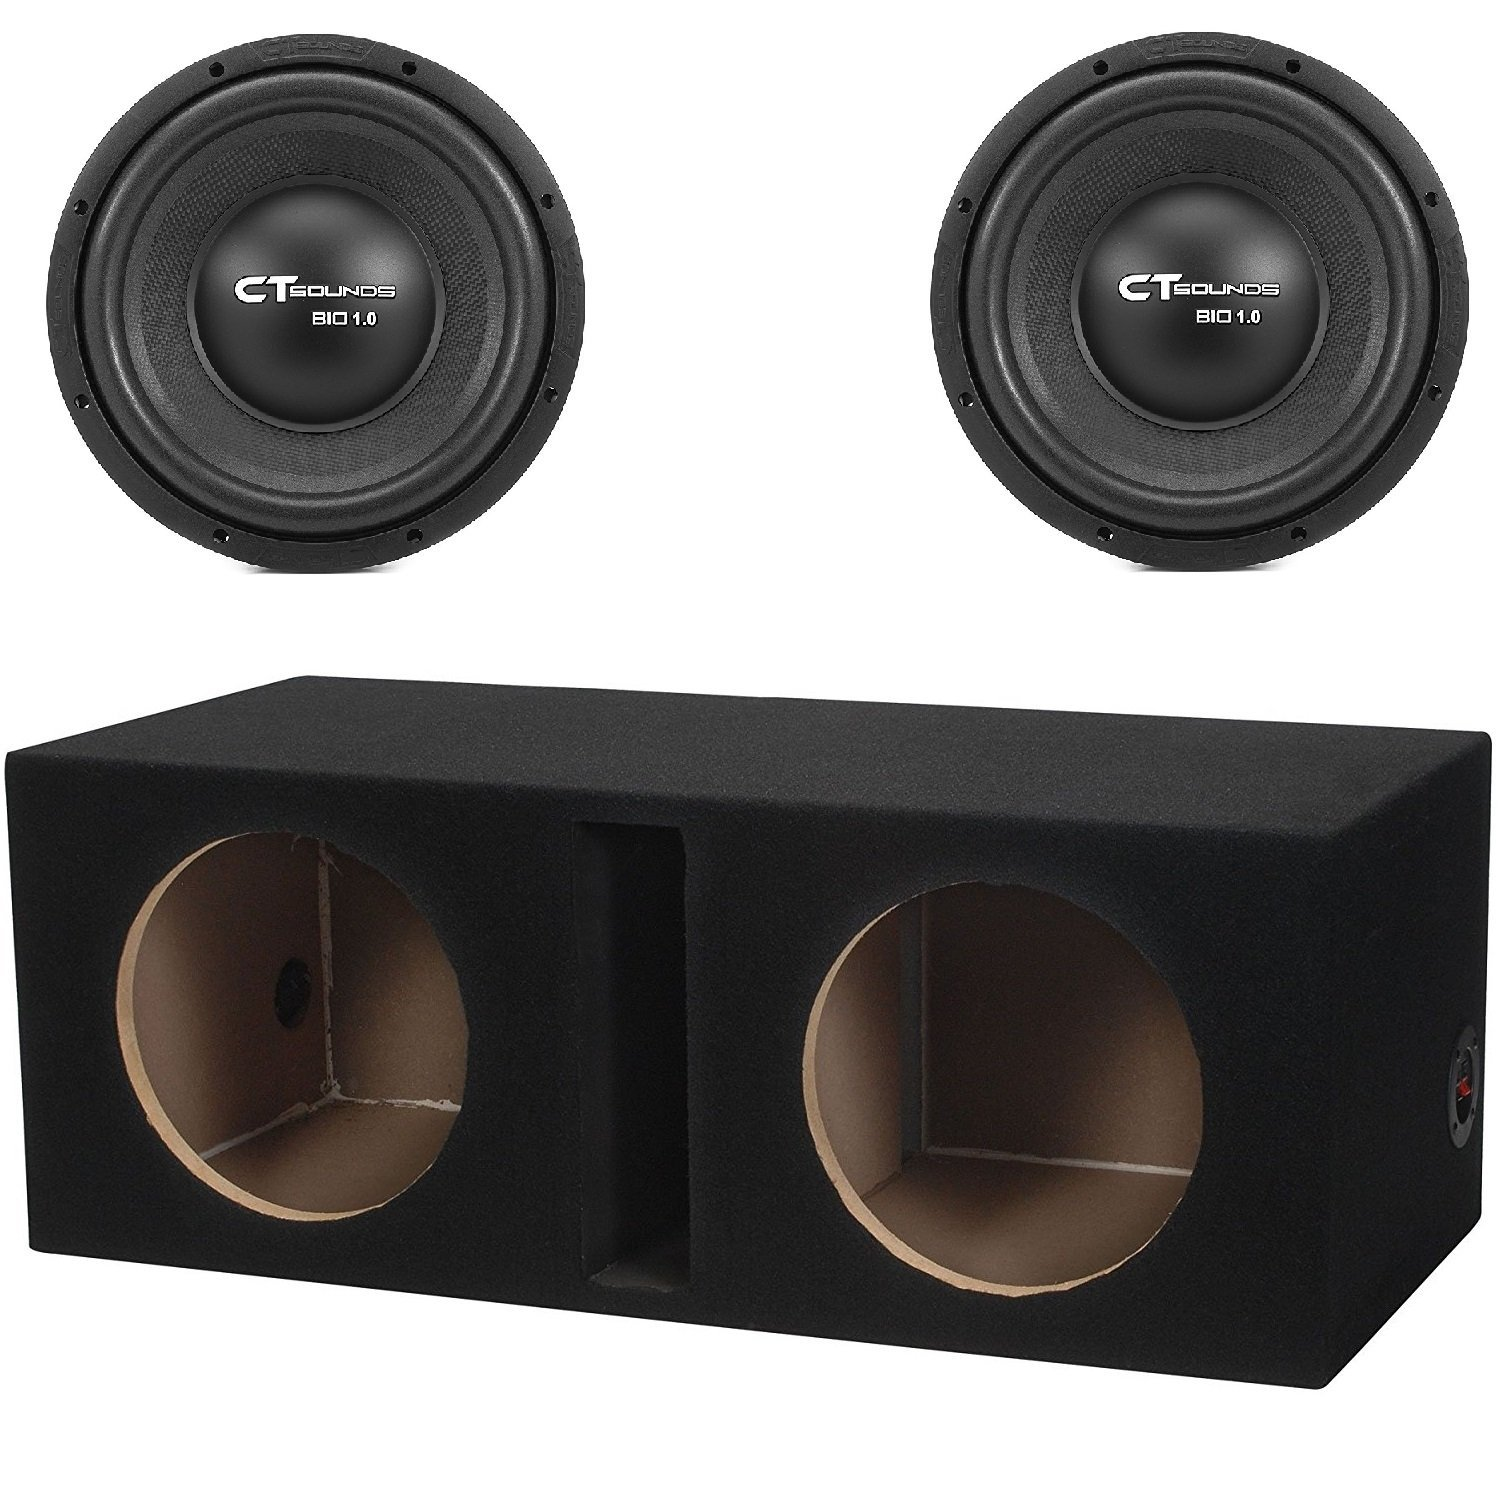 Dual 10 Inch Car Subwoofer Bass Package with Ported Box by CT Sounds